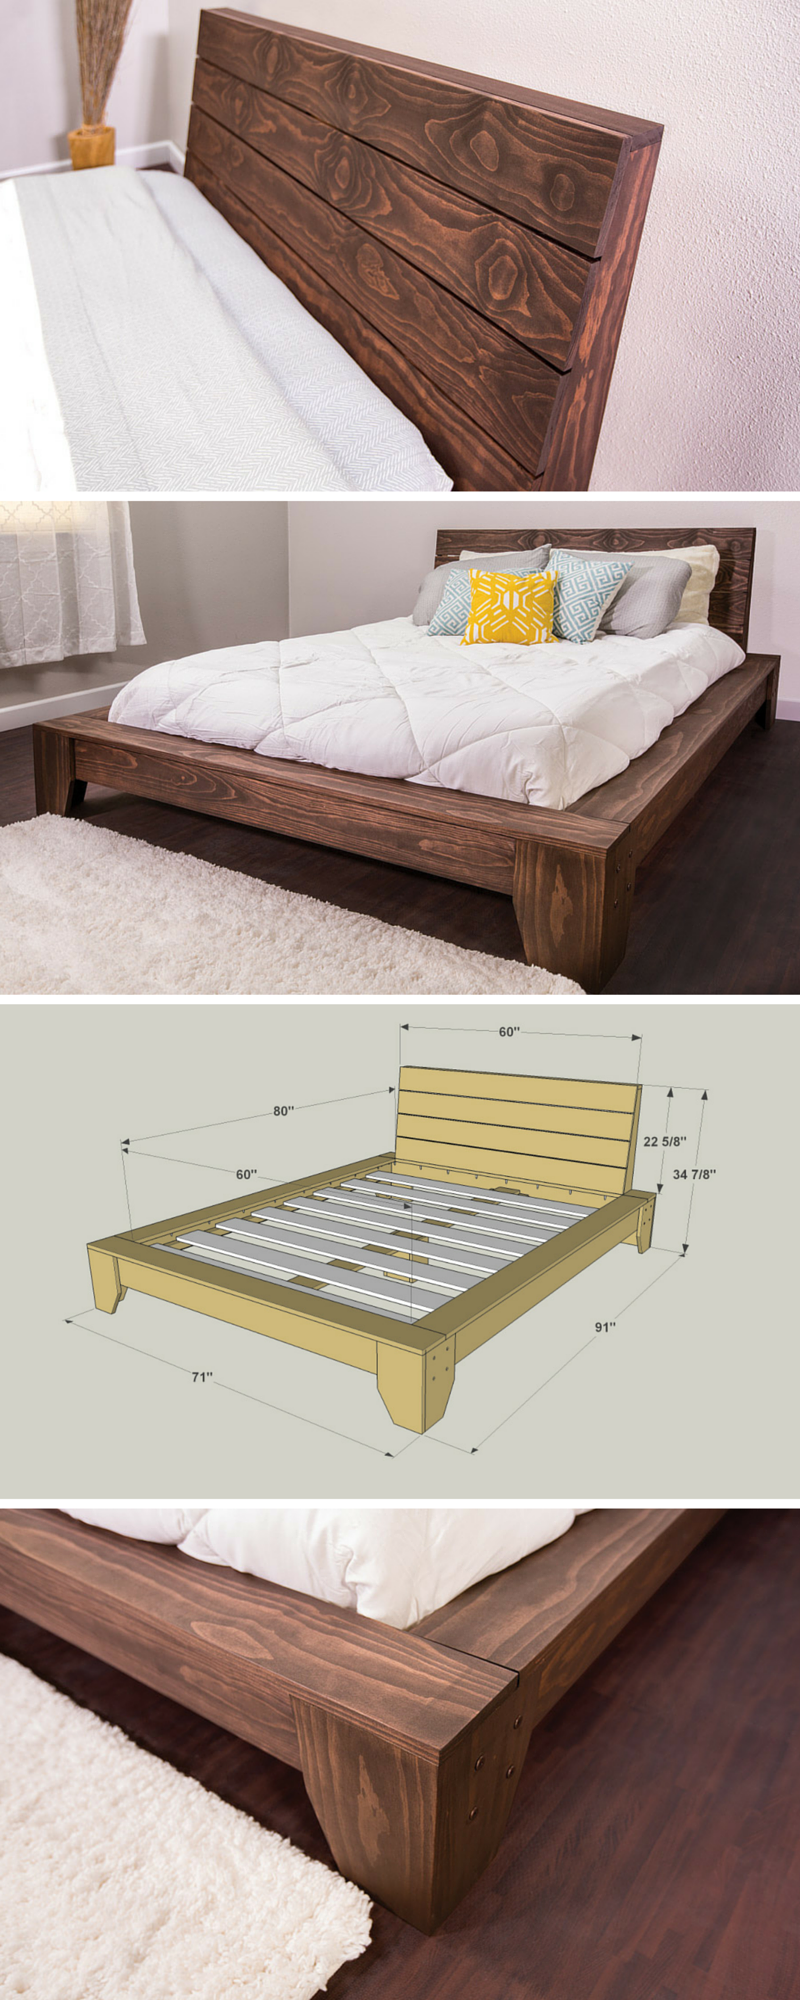 36 Easy Diy Bed Frame Projects To Upgrade Your Bedroom Diy